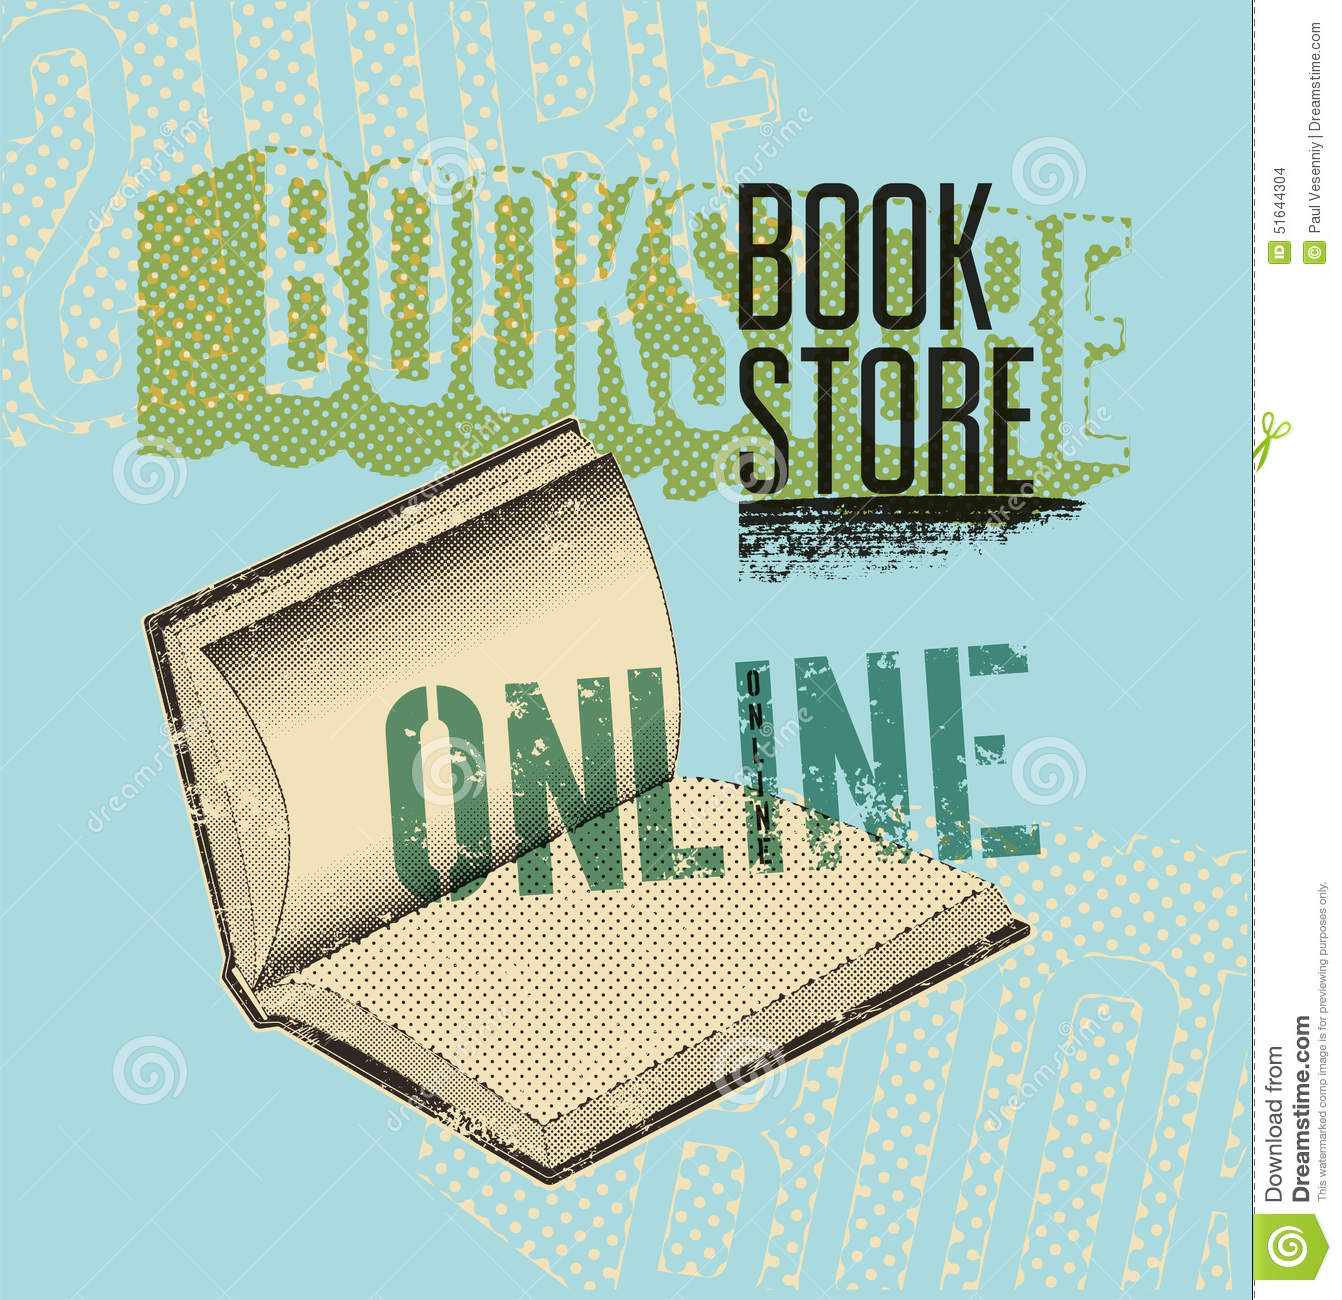 Poster design online - Typographic Poster In Grunge Style For A Online Bookstore Vector Illustration Stock Images